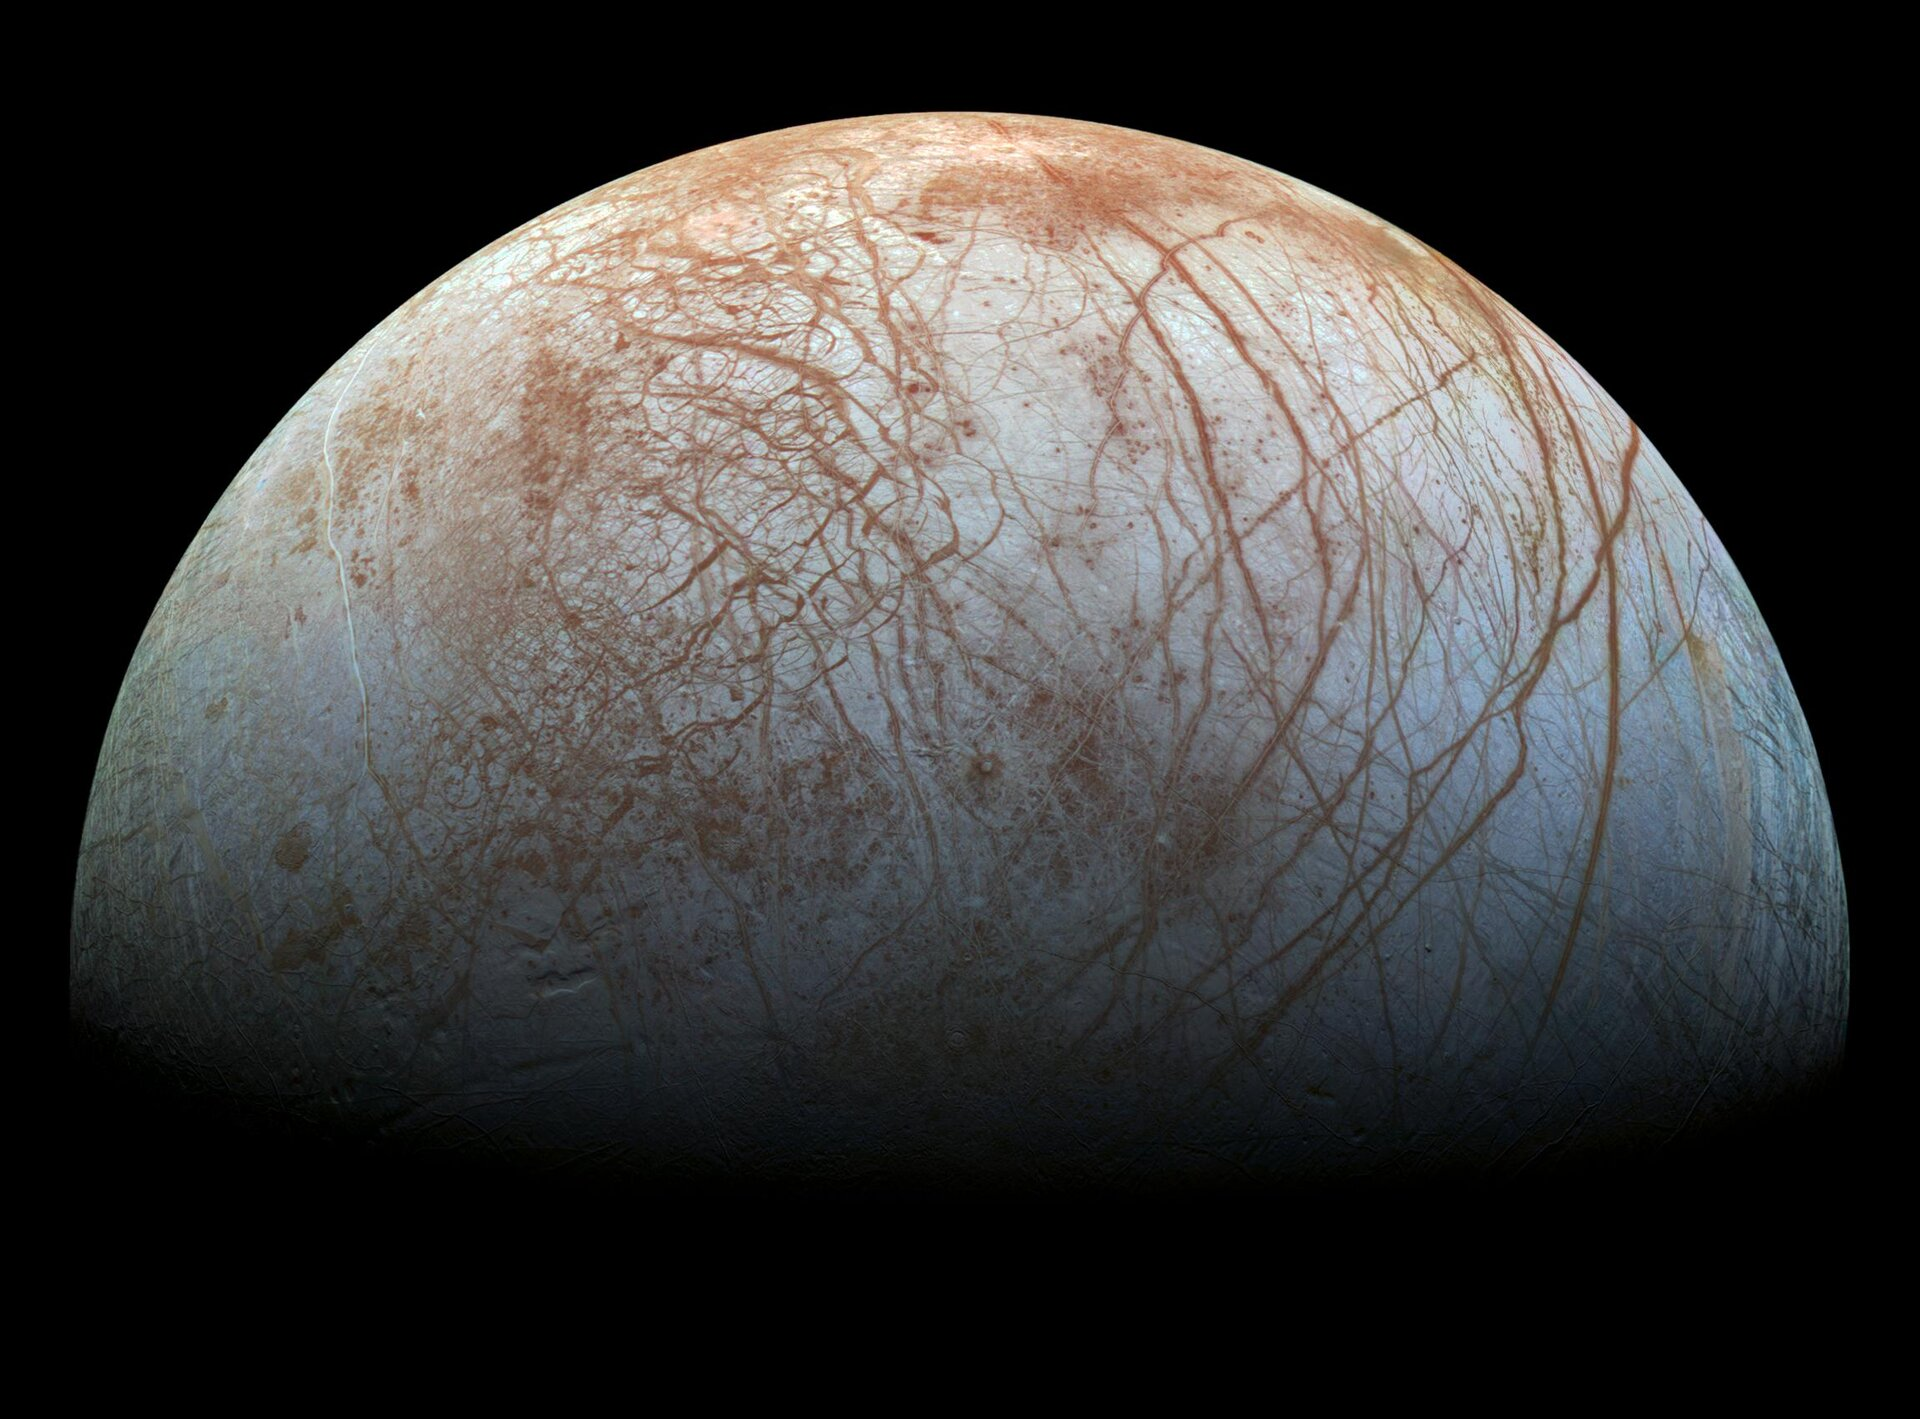 ESA - New evidence of watery plumes on Jupiter's moon Europa